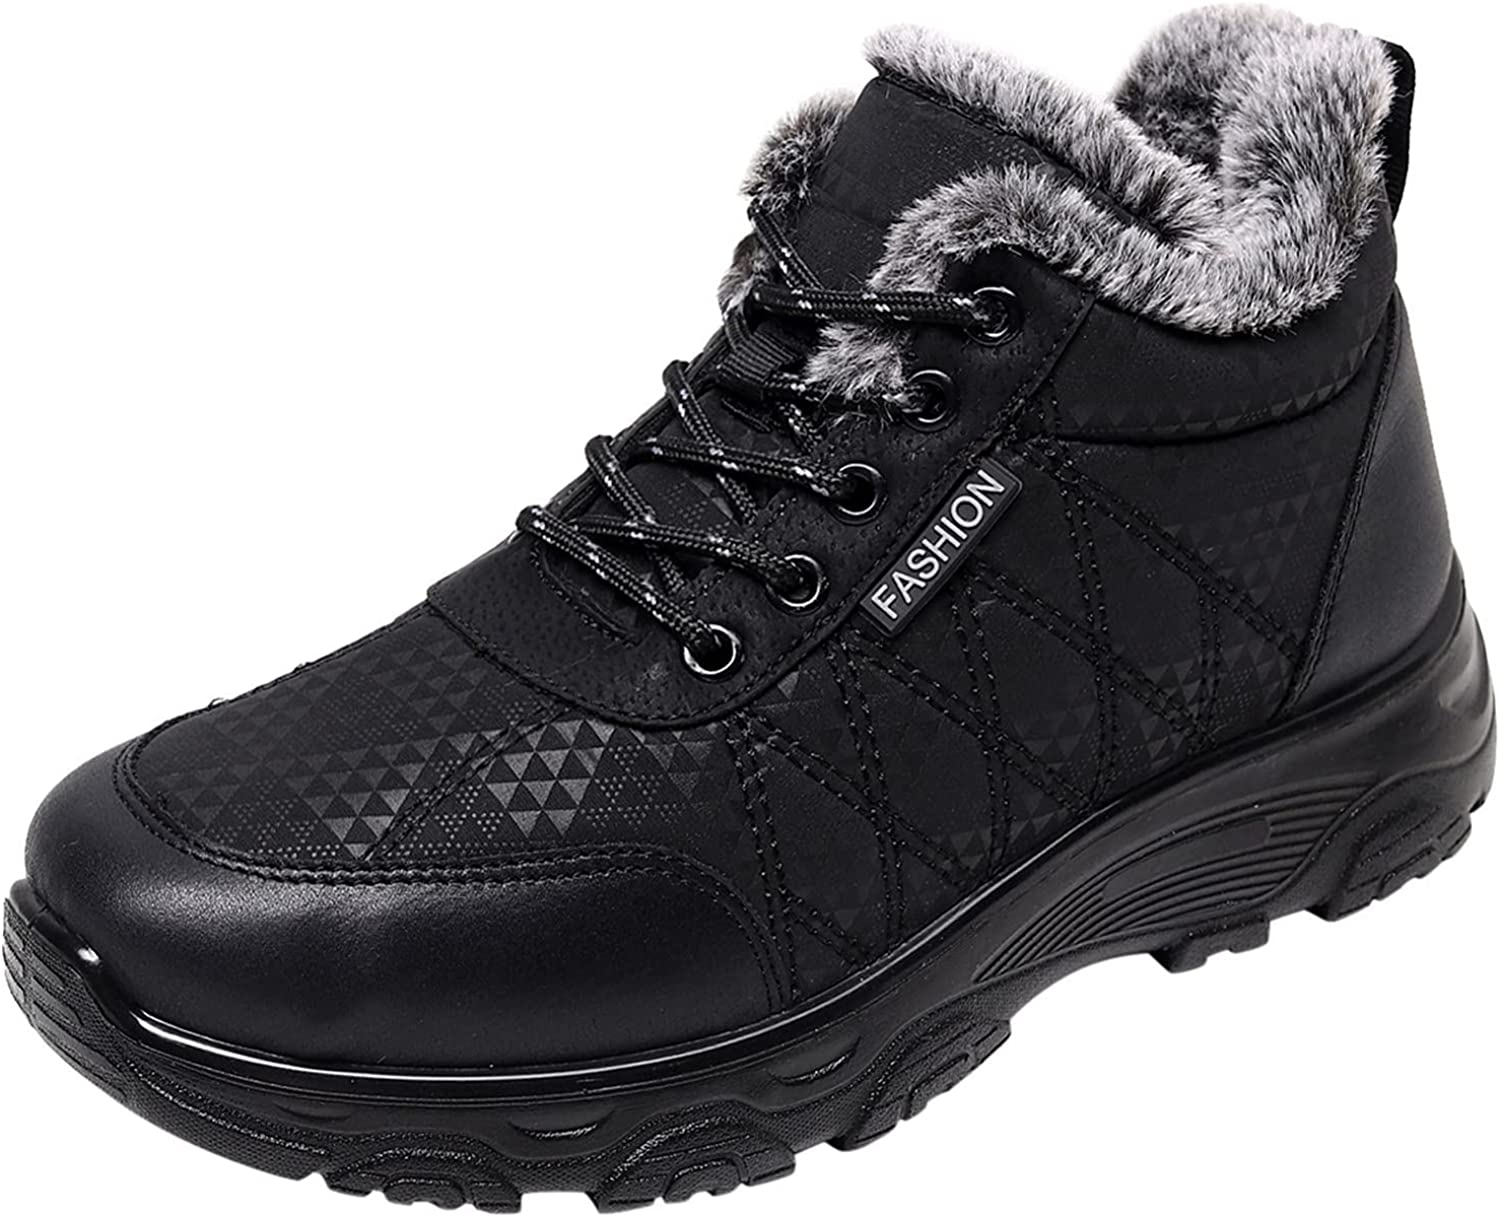 Snow Boots For Women Fashion Lace-Up Non-Slip Winter Keep Warm Flat Snow Boots Round Toe Sport Shoes